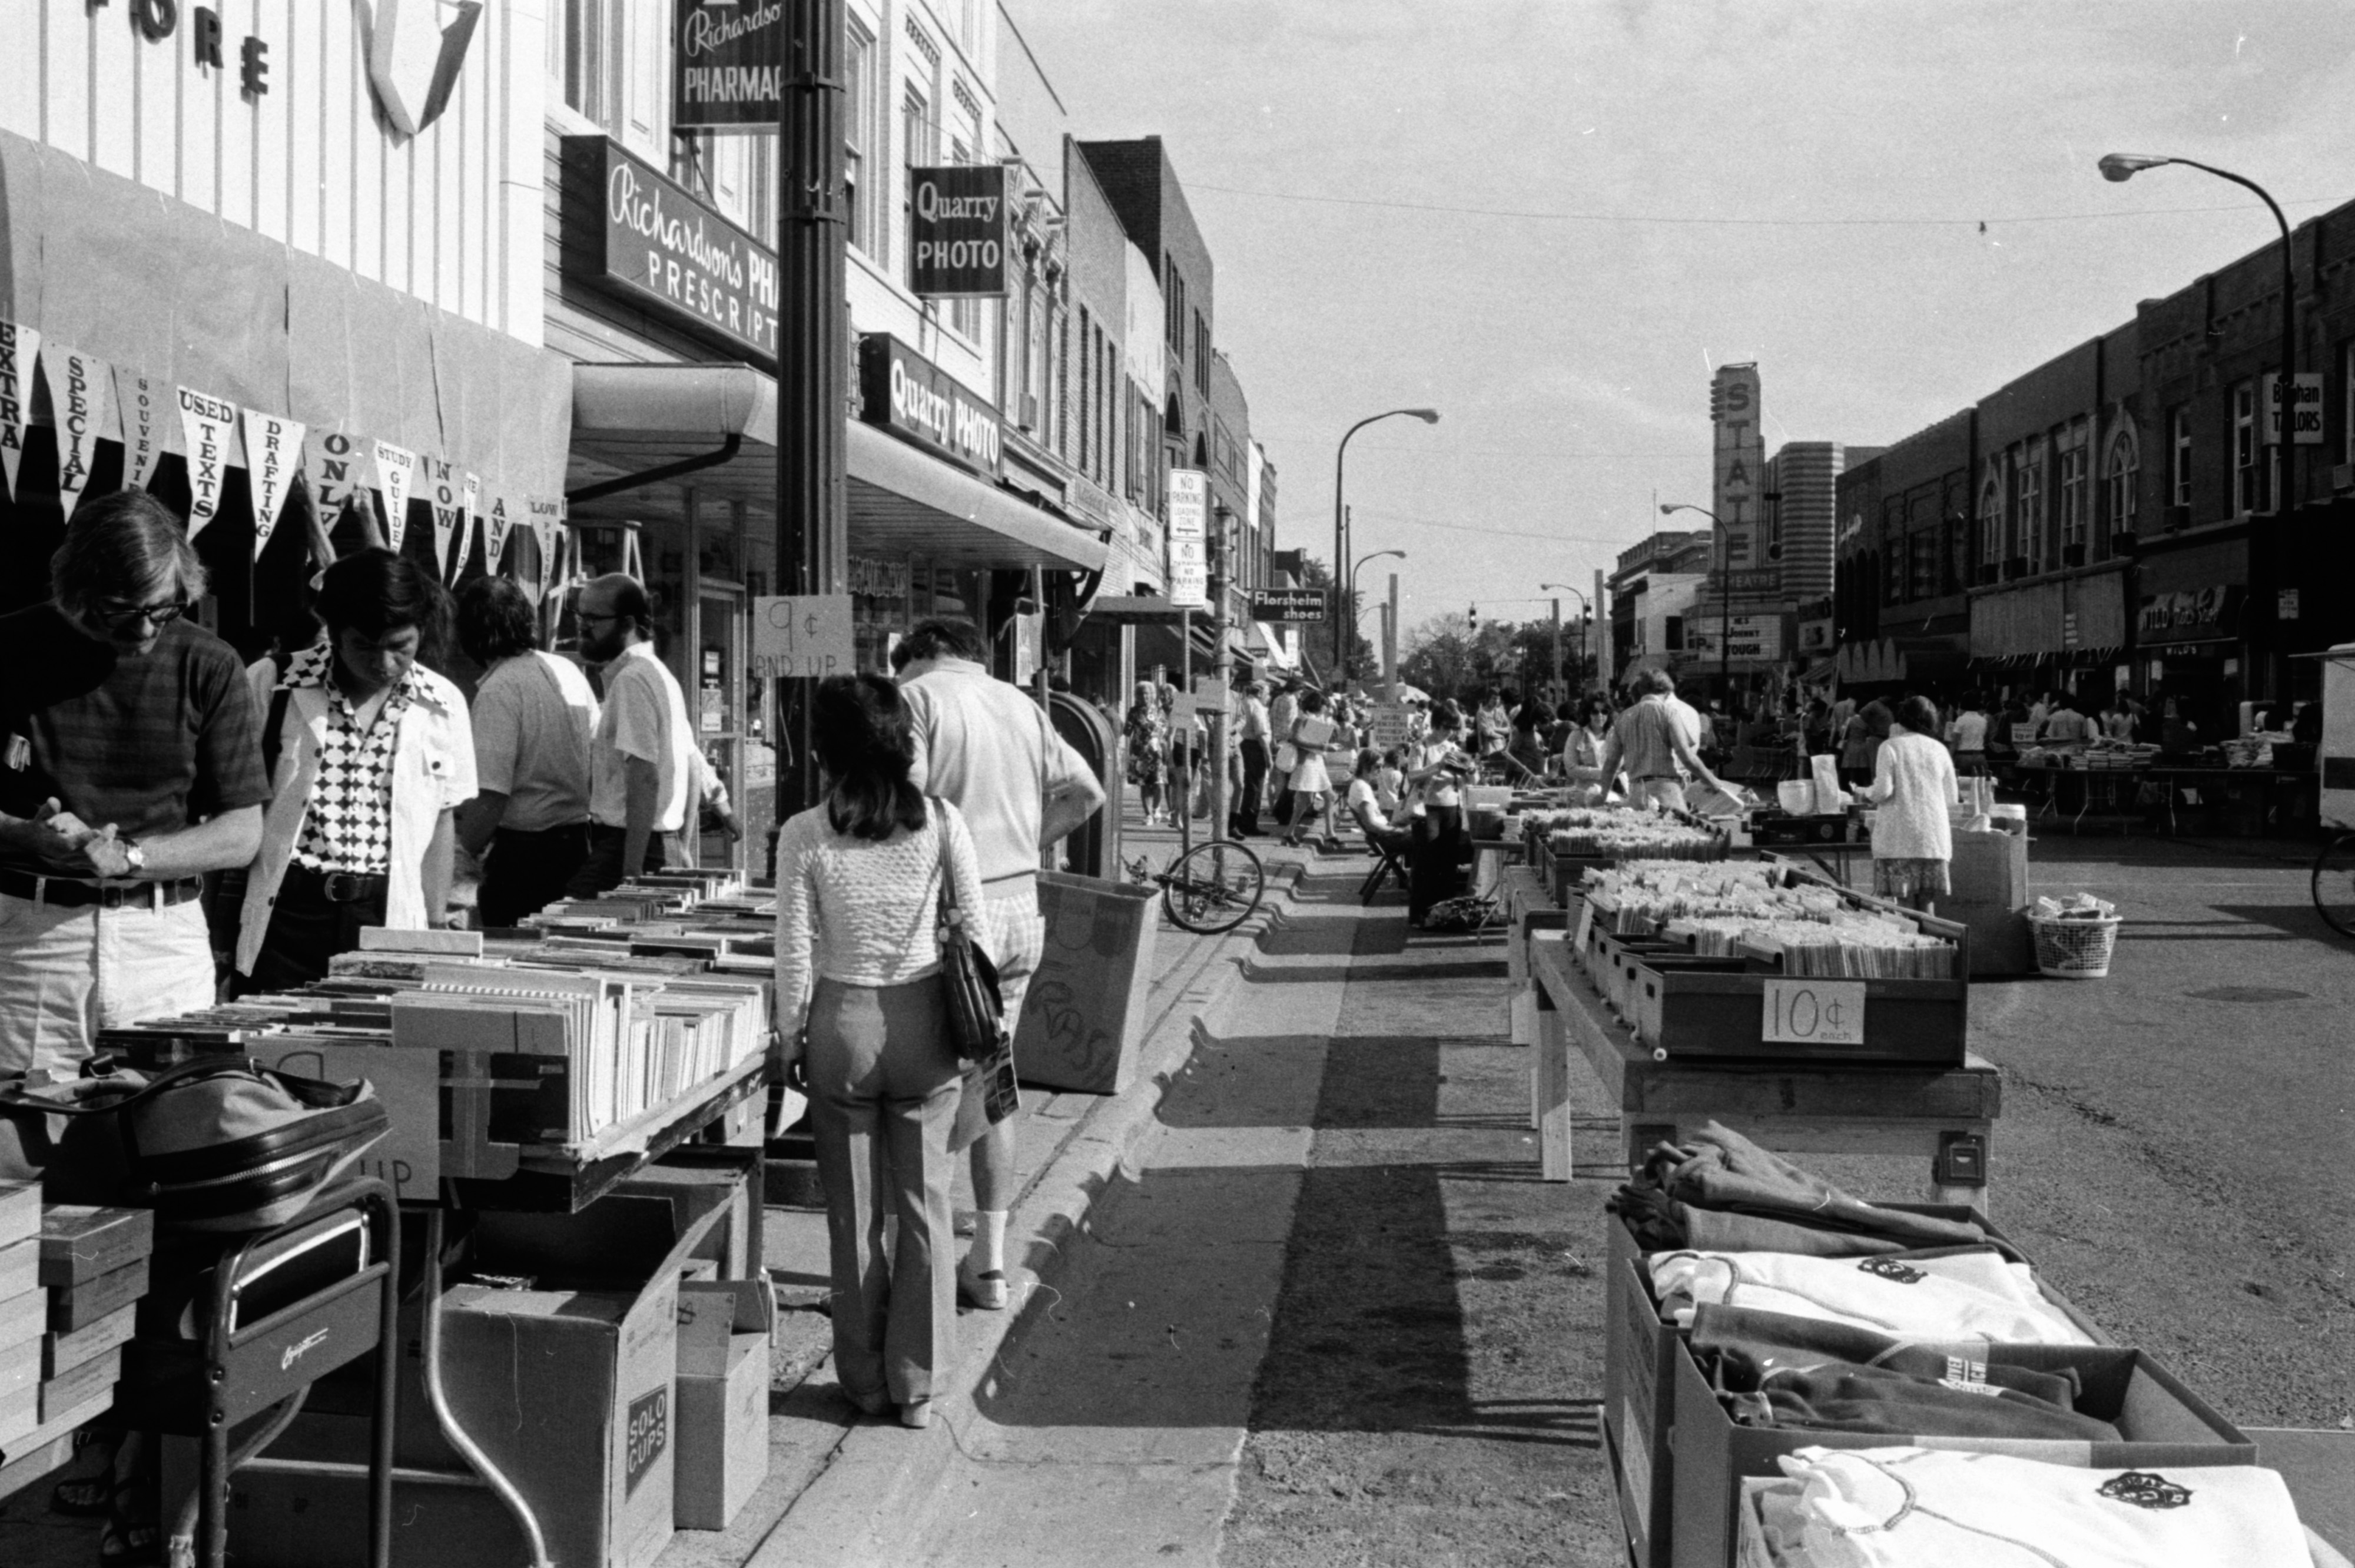 Bargain Days on State St image